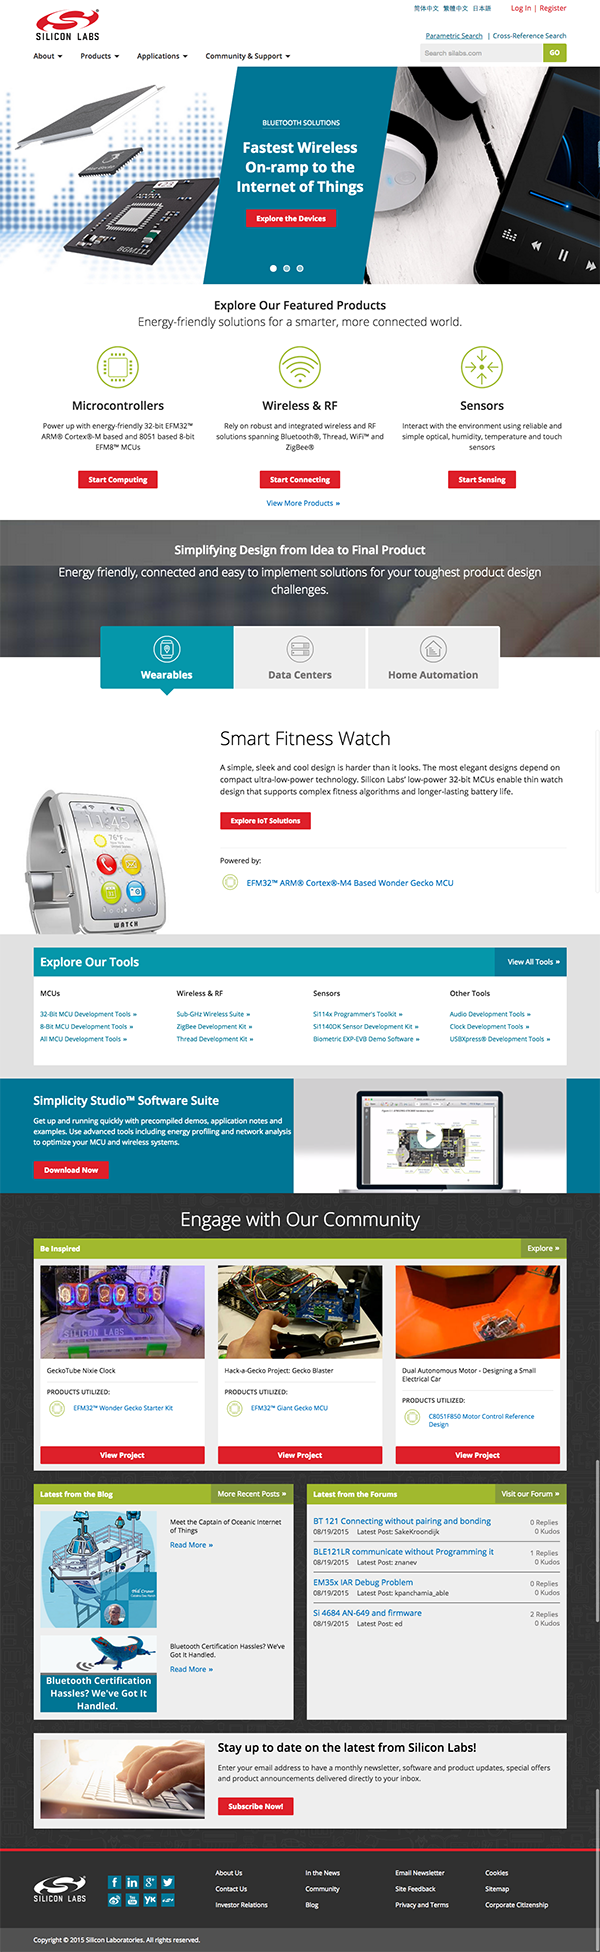 Silicon Labs Home Page